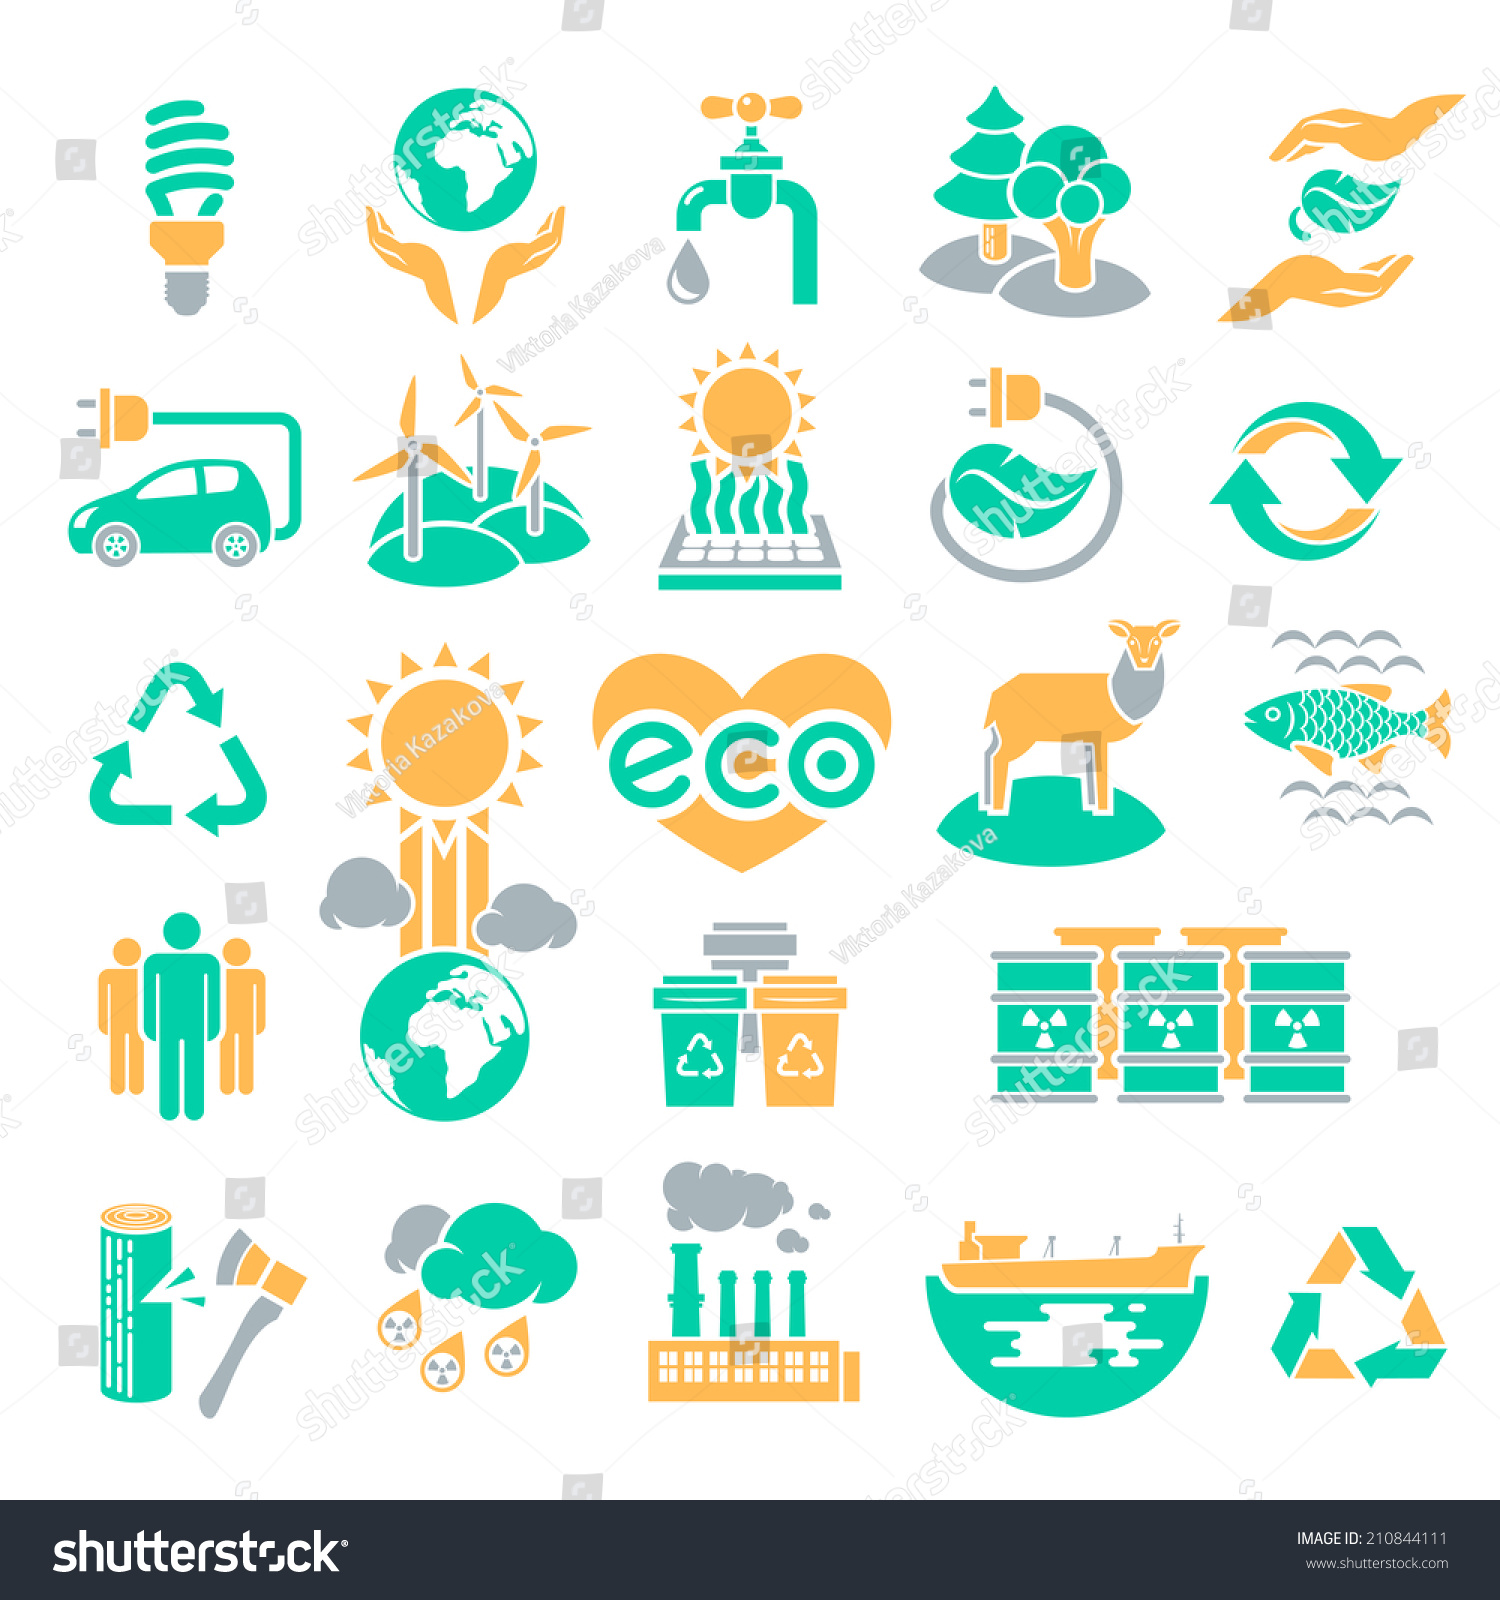 worksheet Renewable Energy Worksheet worksheet alternative natural resources mikyu free set three colors silhouette icons ecology stock illustration of theme including alternative